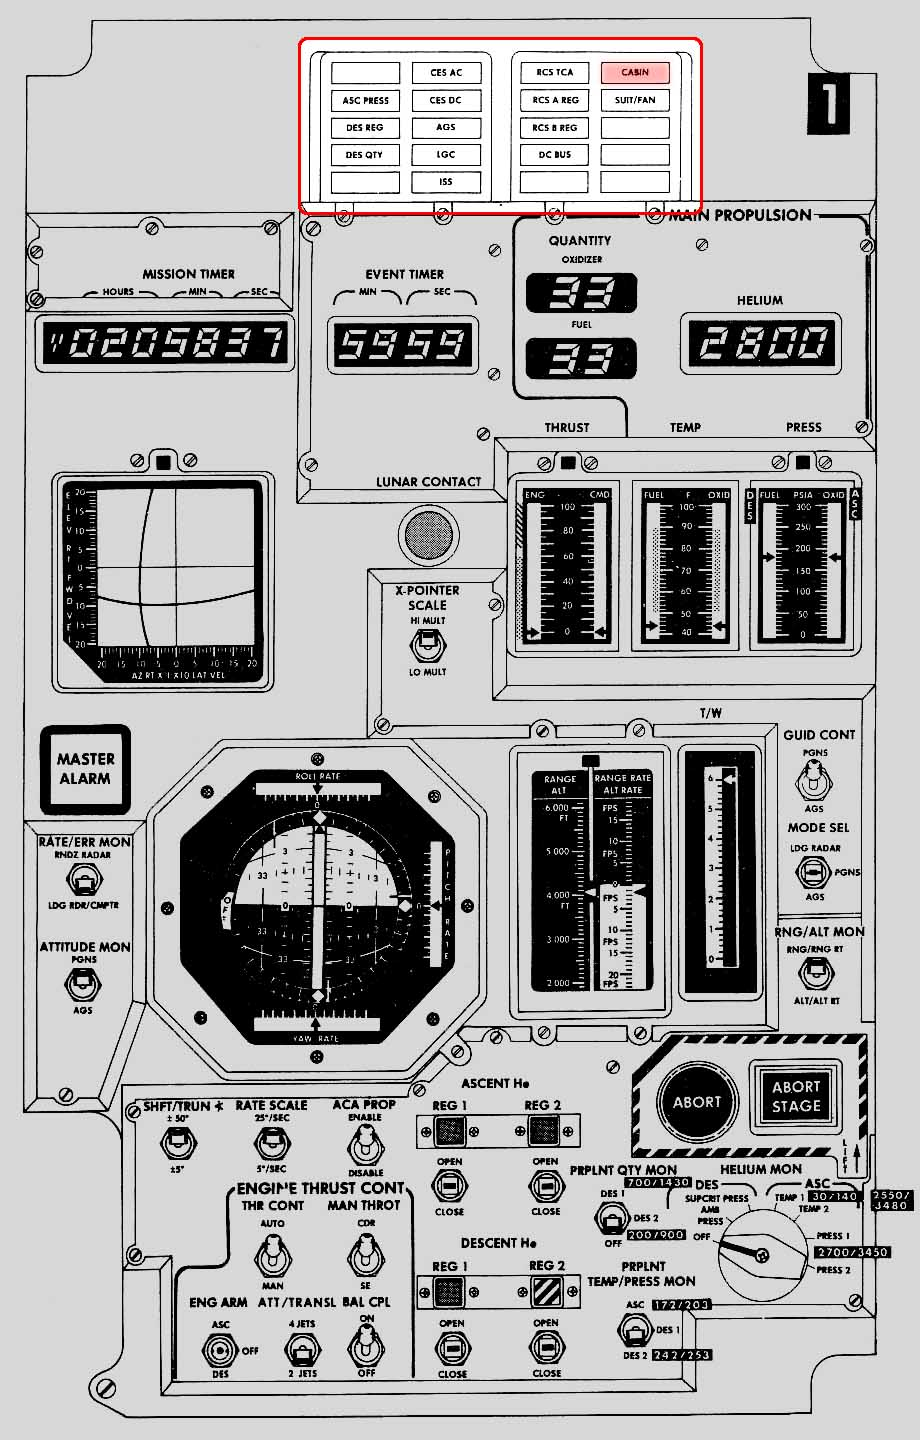 Return To The Lm And Closeout How Build 12 Stage Neon Sequencer Ne 2 51 All Cw Lights On Panel Are Yellow Indicate Cautions